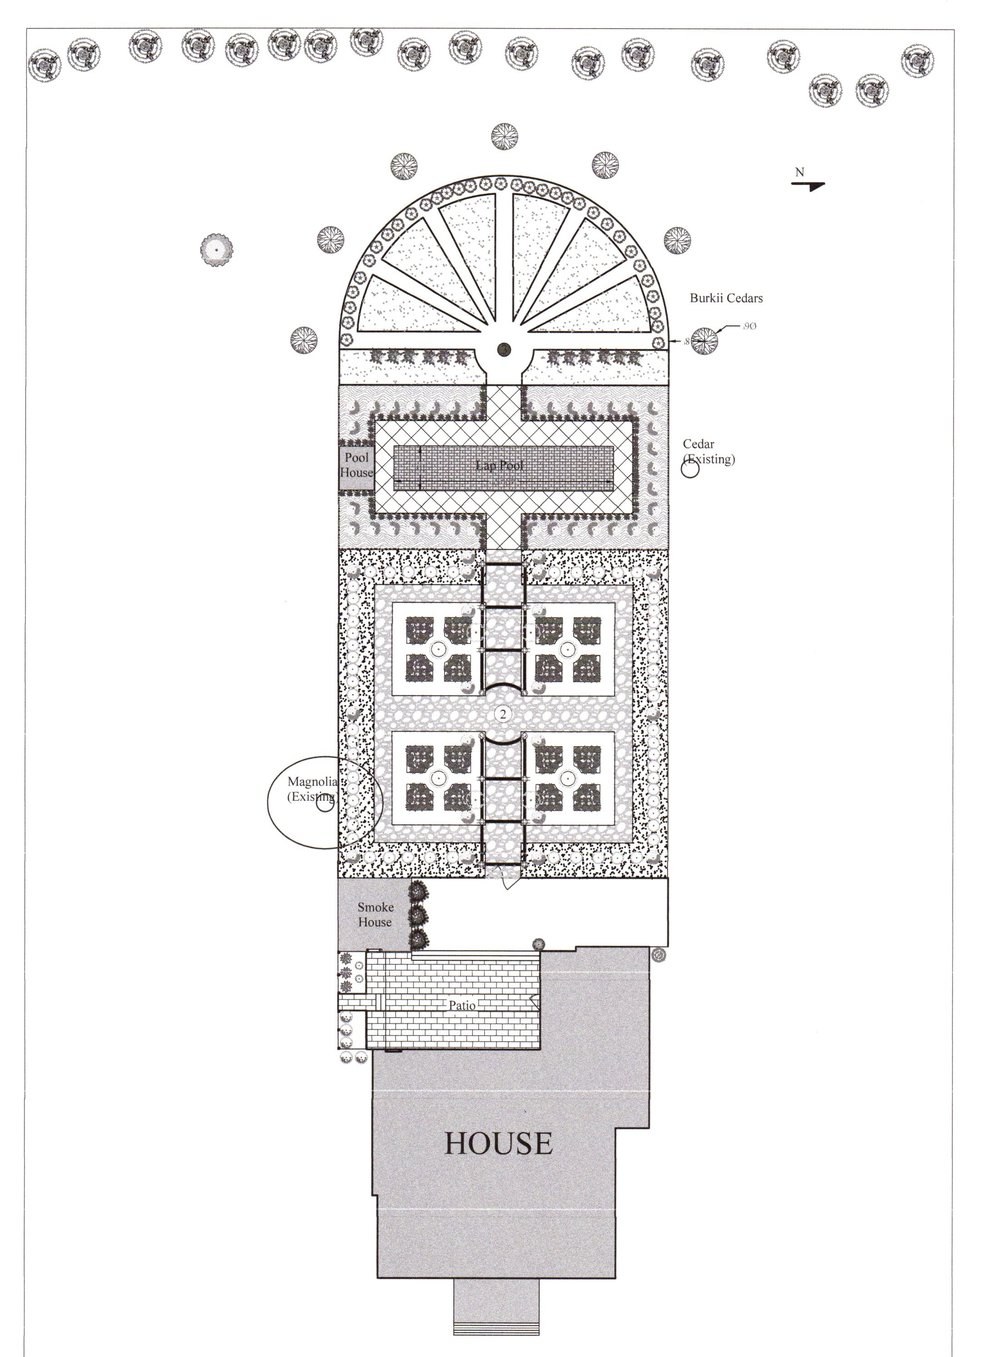 Design for a Historic Home